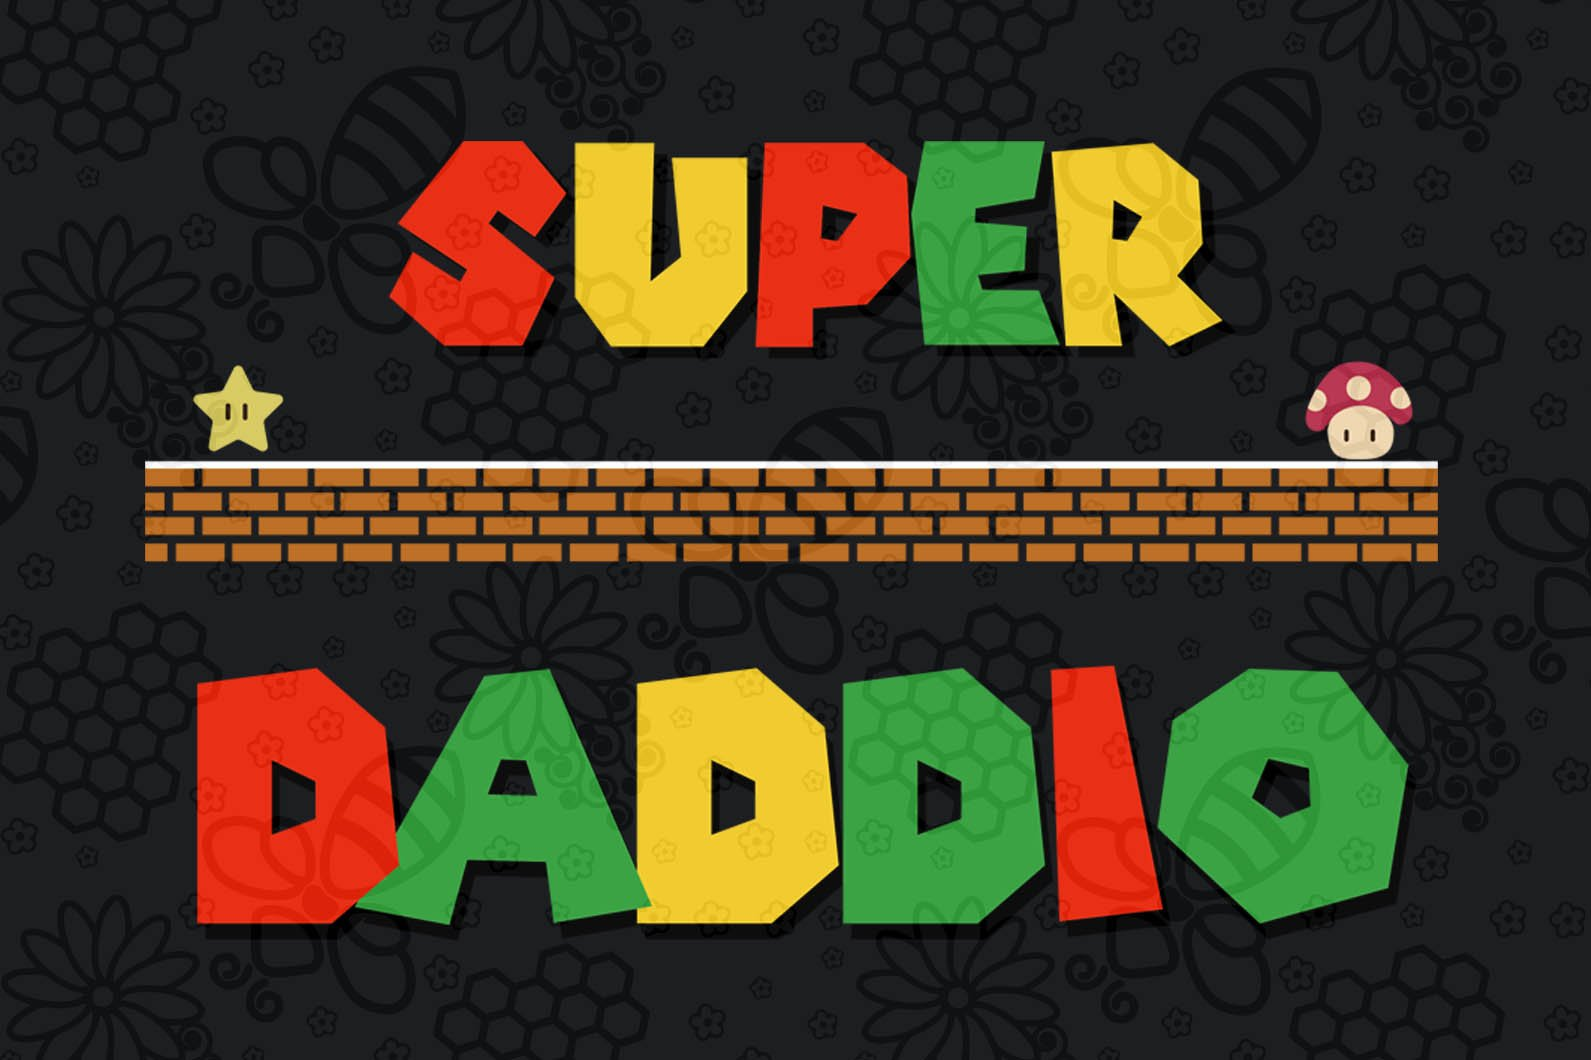 Super daddio , papa svg, baba svg,father's day svg, father svg, dad svg, daddy svg, poppop svg Files For Silhouette, Files For Cricut, SVG, DXF, EPS, PNG, Instant Download